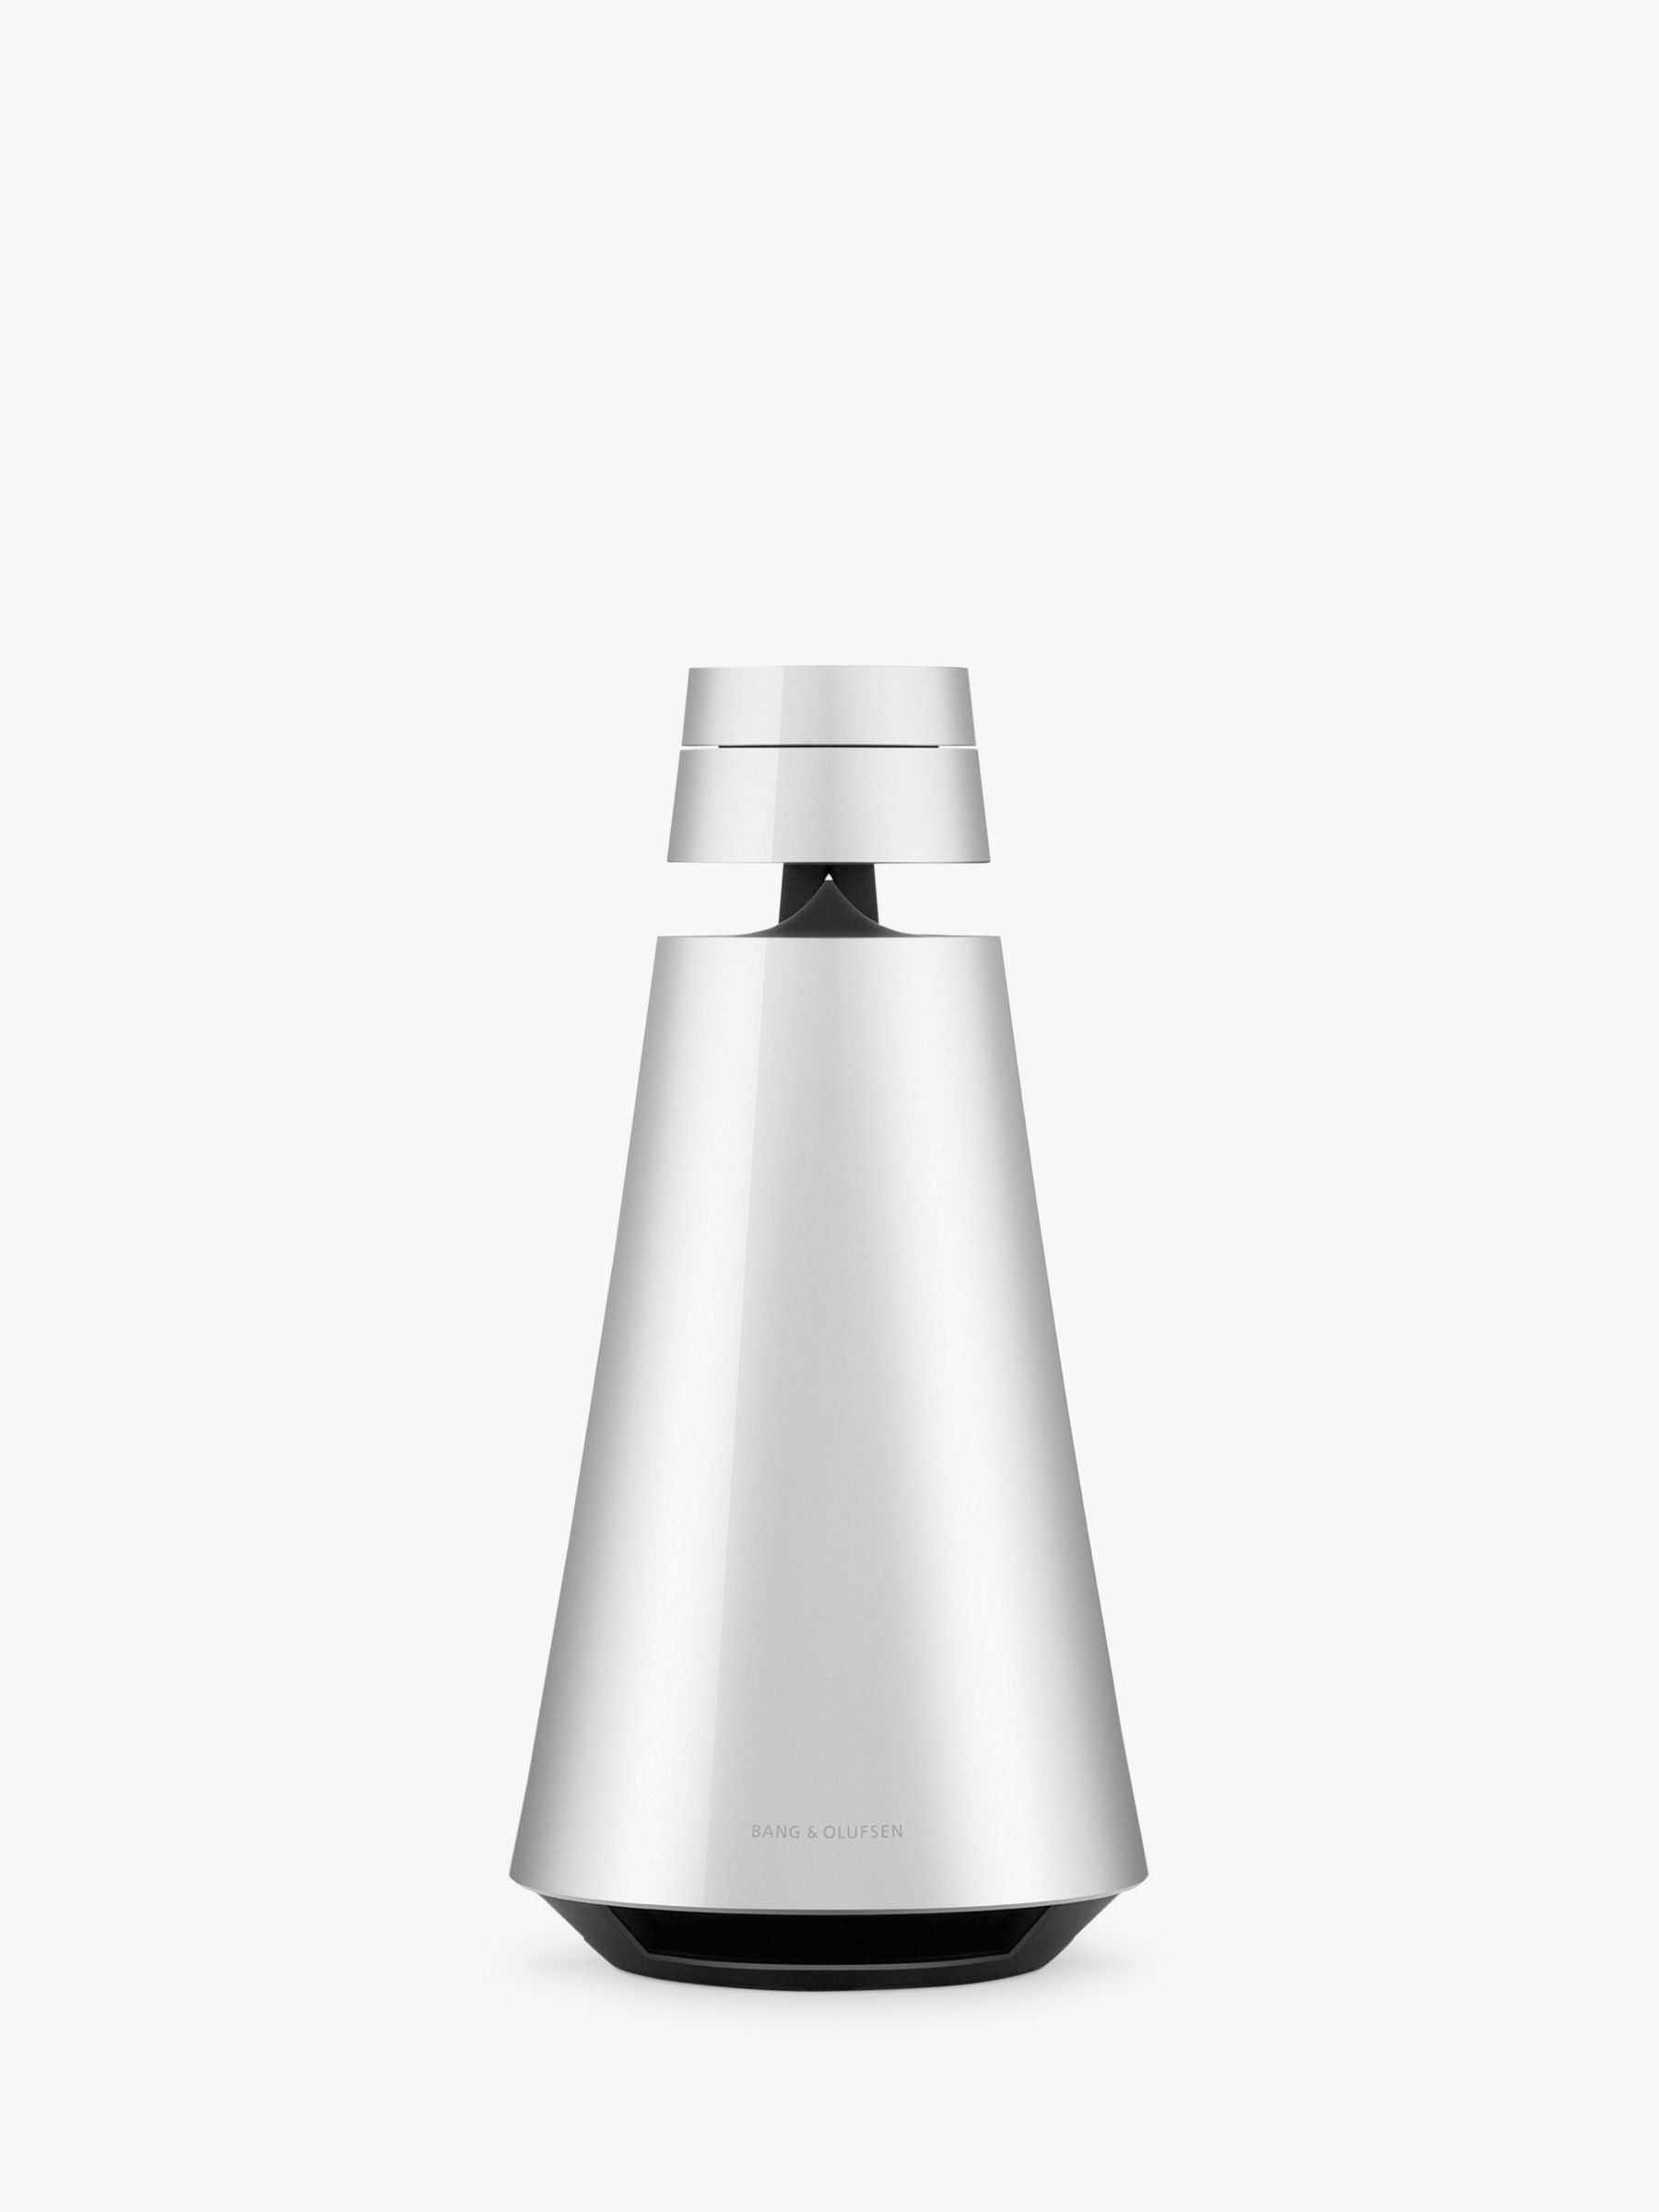 Bang & Olufsen Bang & Olufsen BeoSound 1 Portable Smart Speaker with the Google Assistant